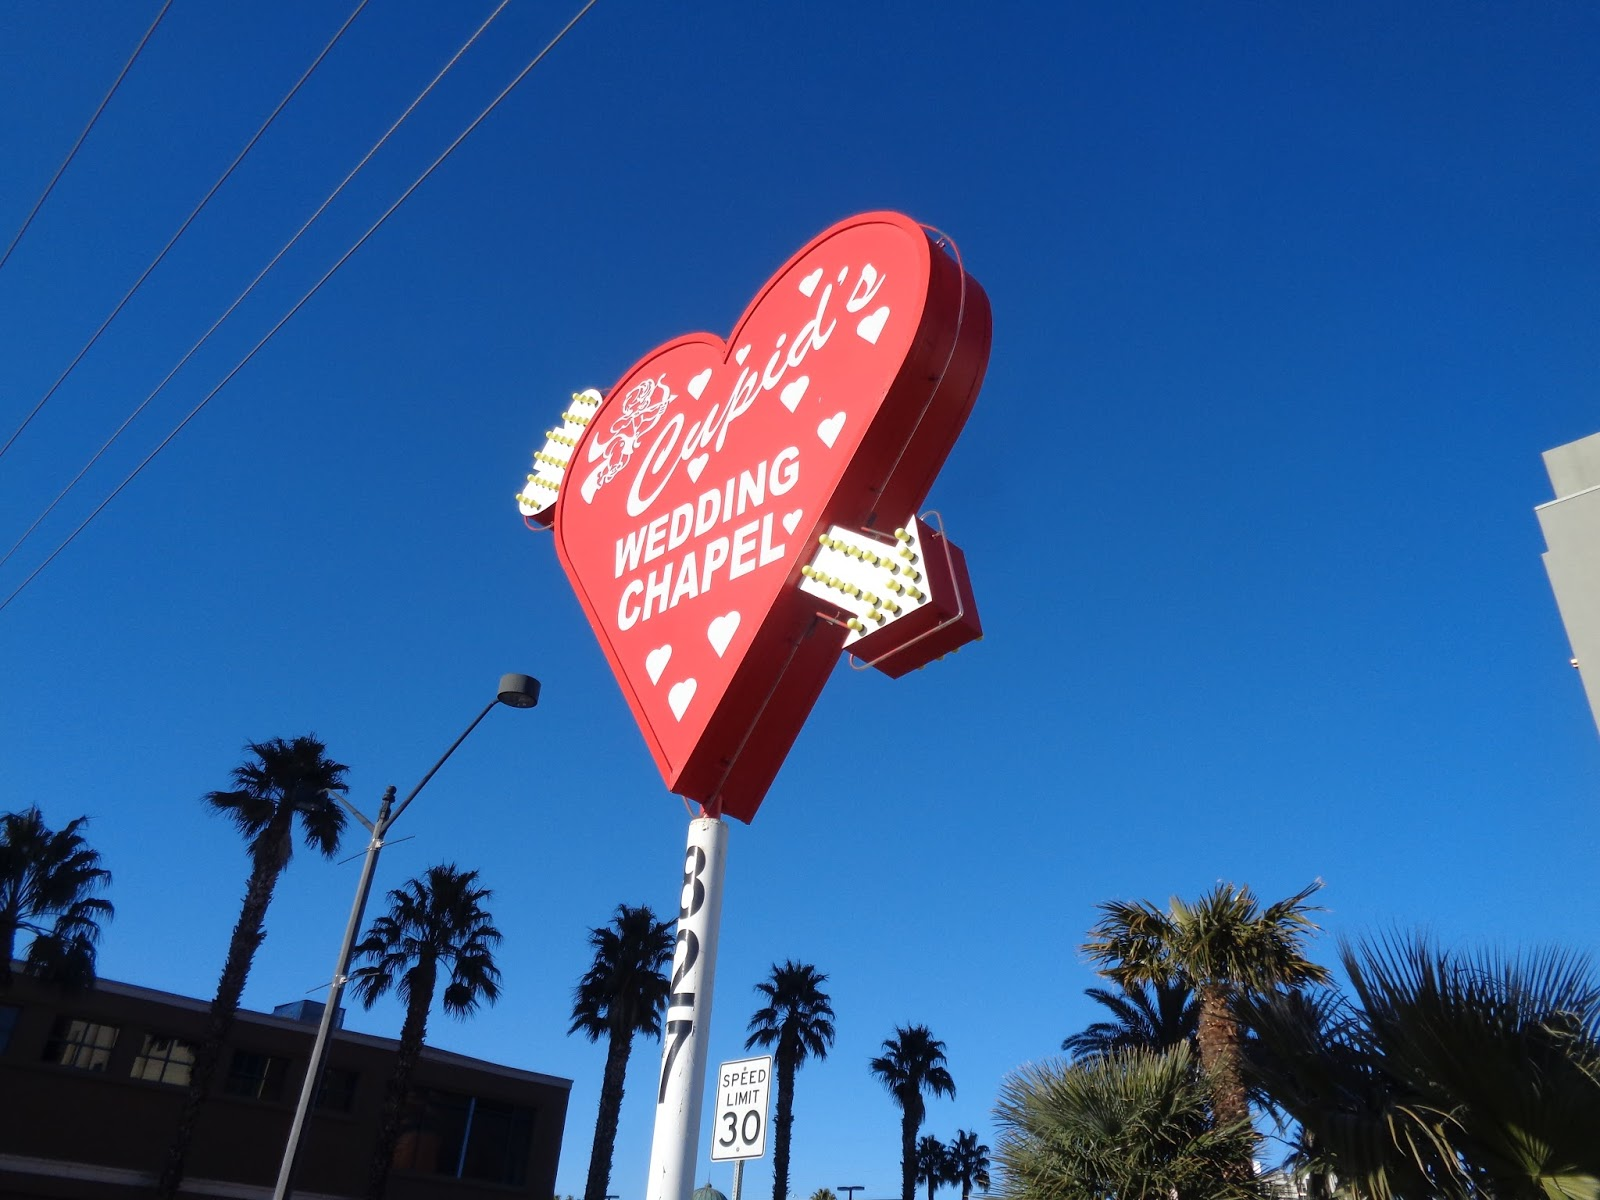 Church And States About Those Las Vegas Weddings